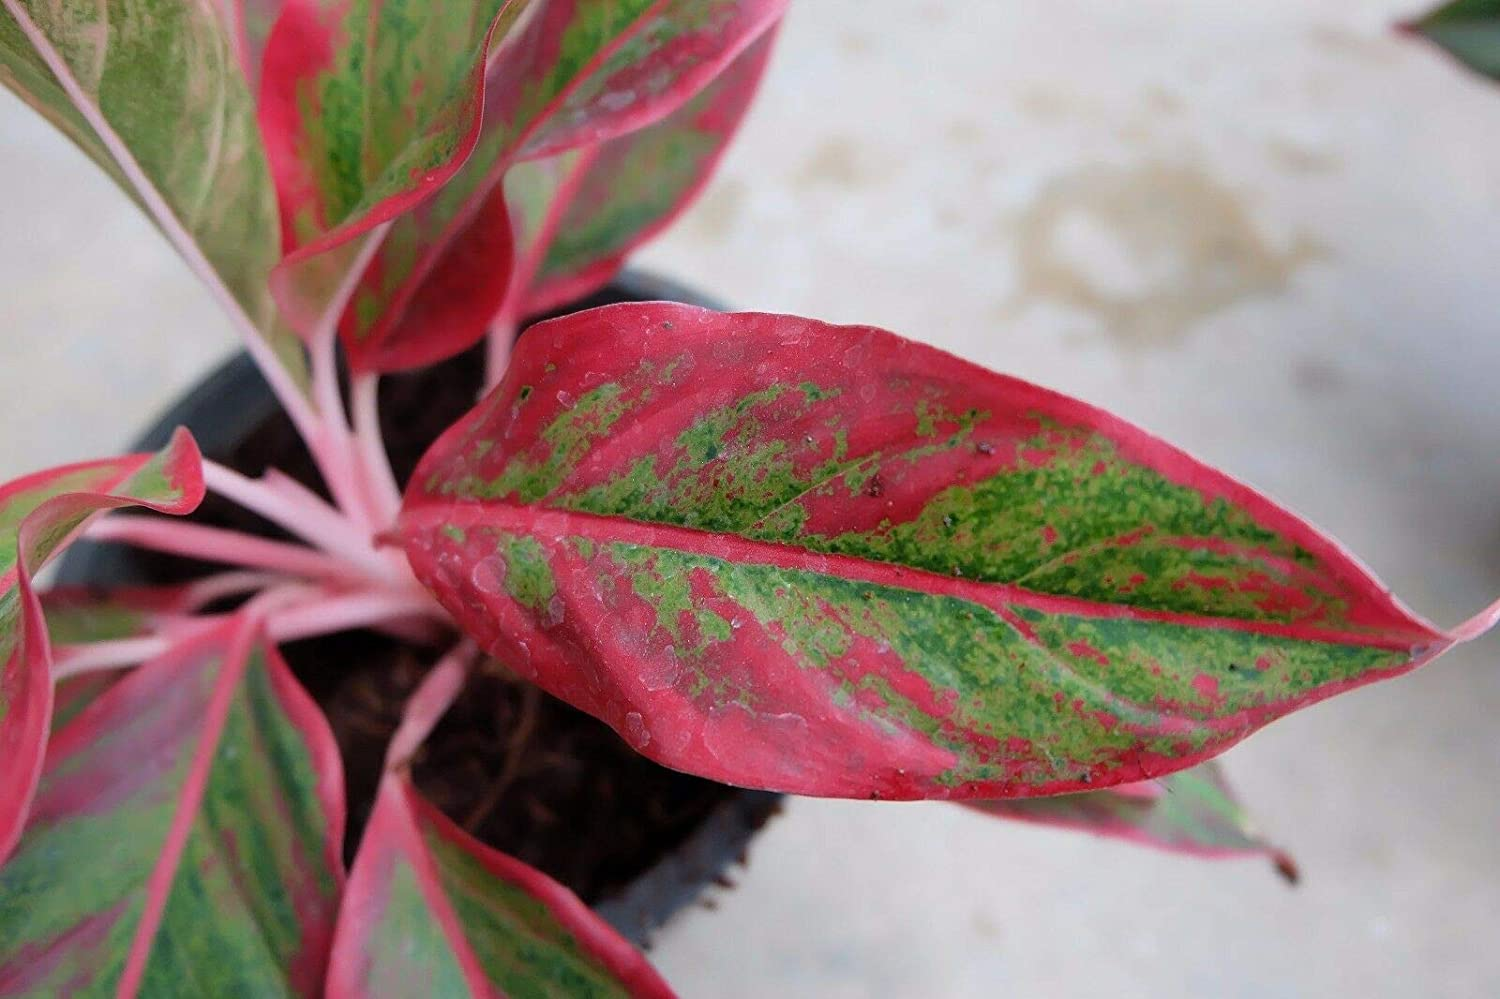 1 Aglaonema Plant Dang Ch evergreens Houseplants Size Pot 6 From Thai